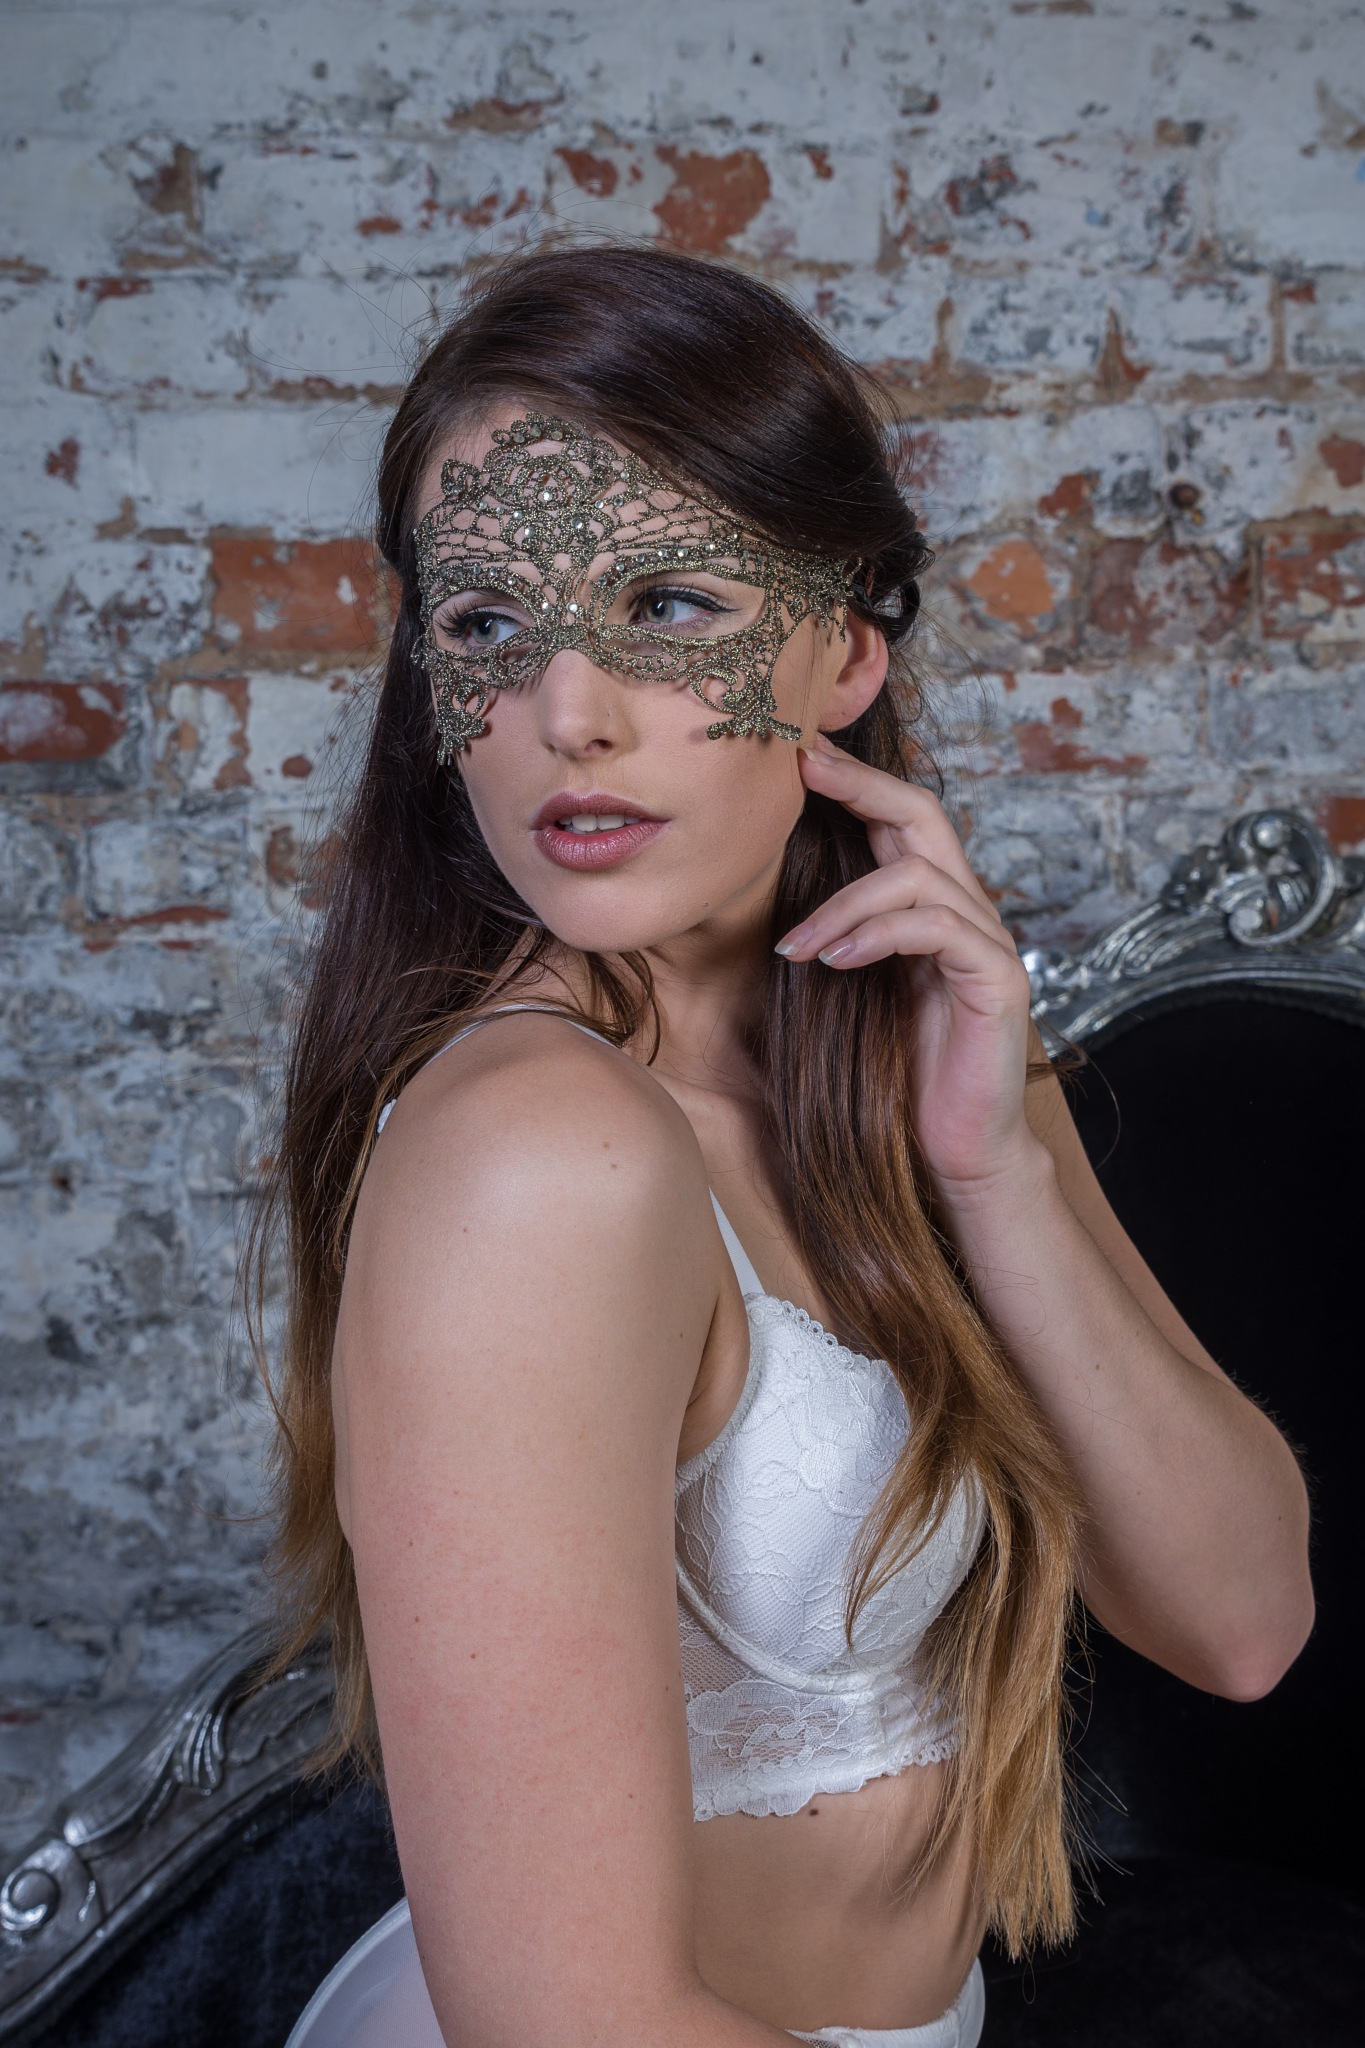 Lace mask by D Whitehead